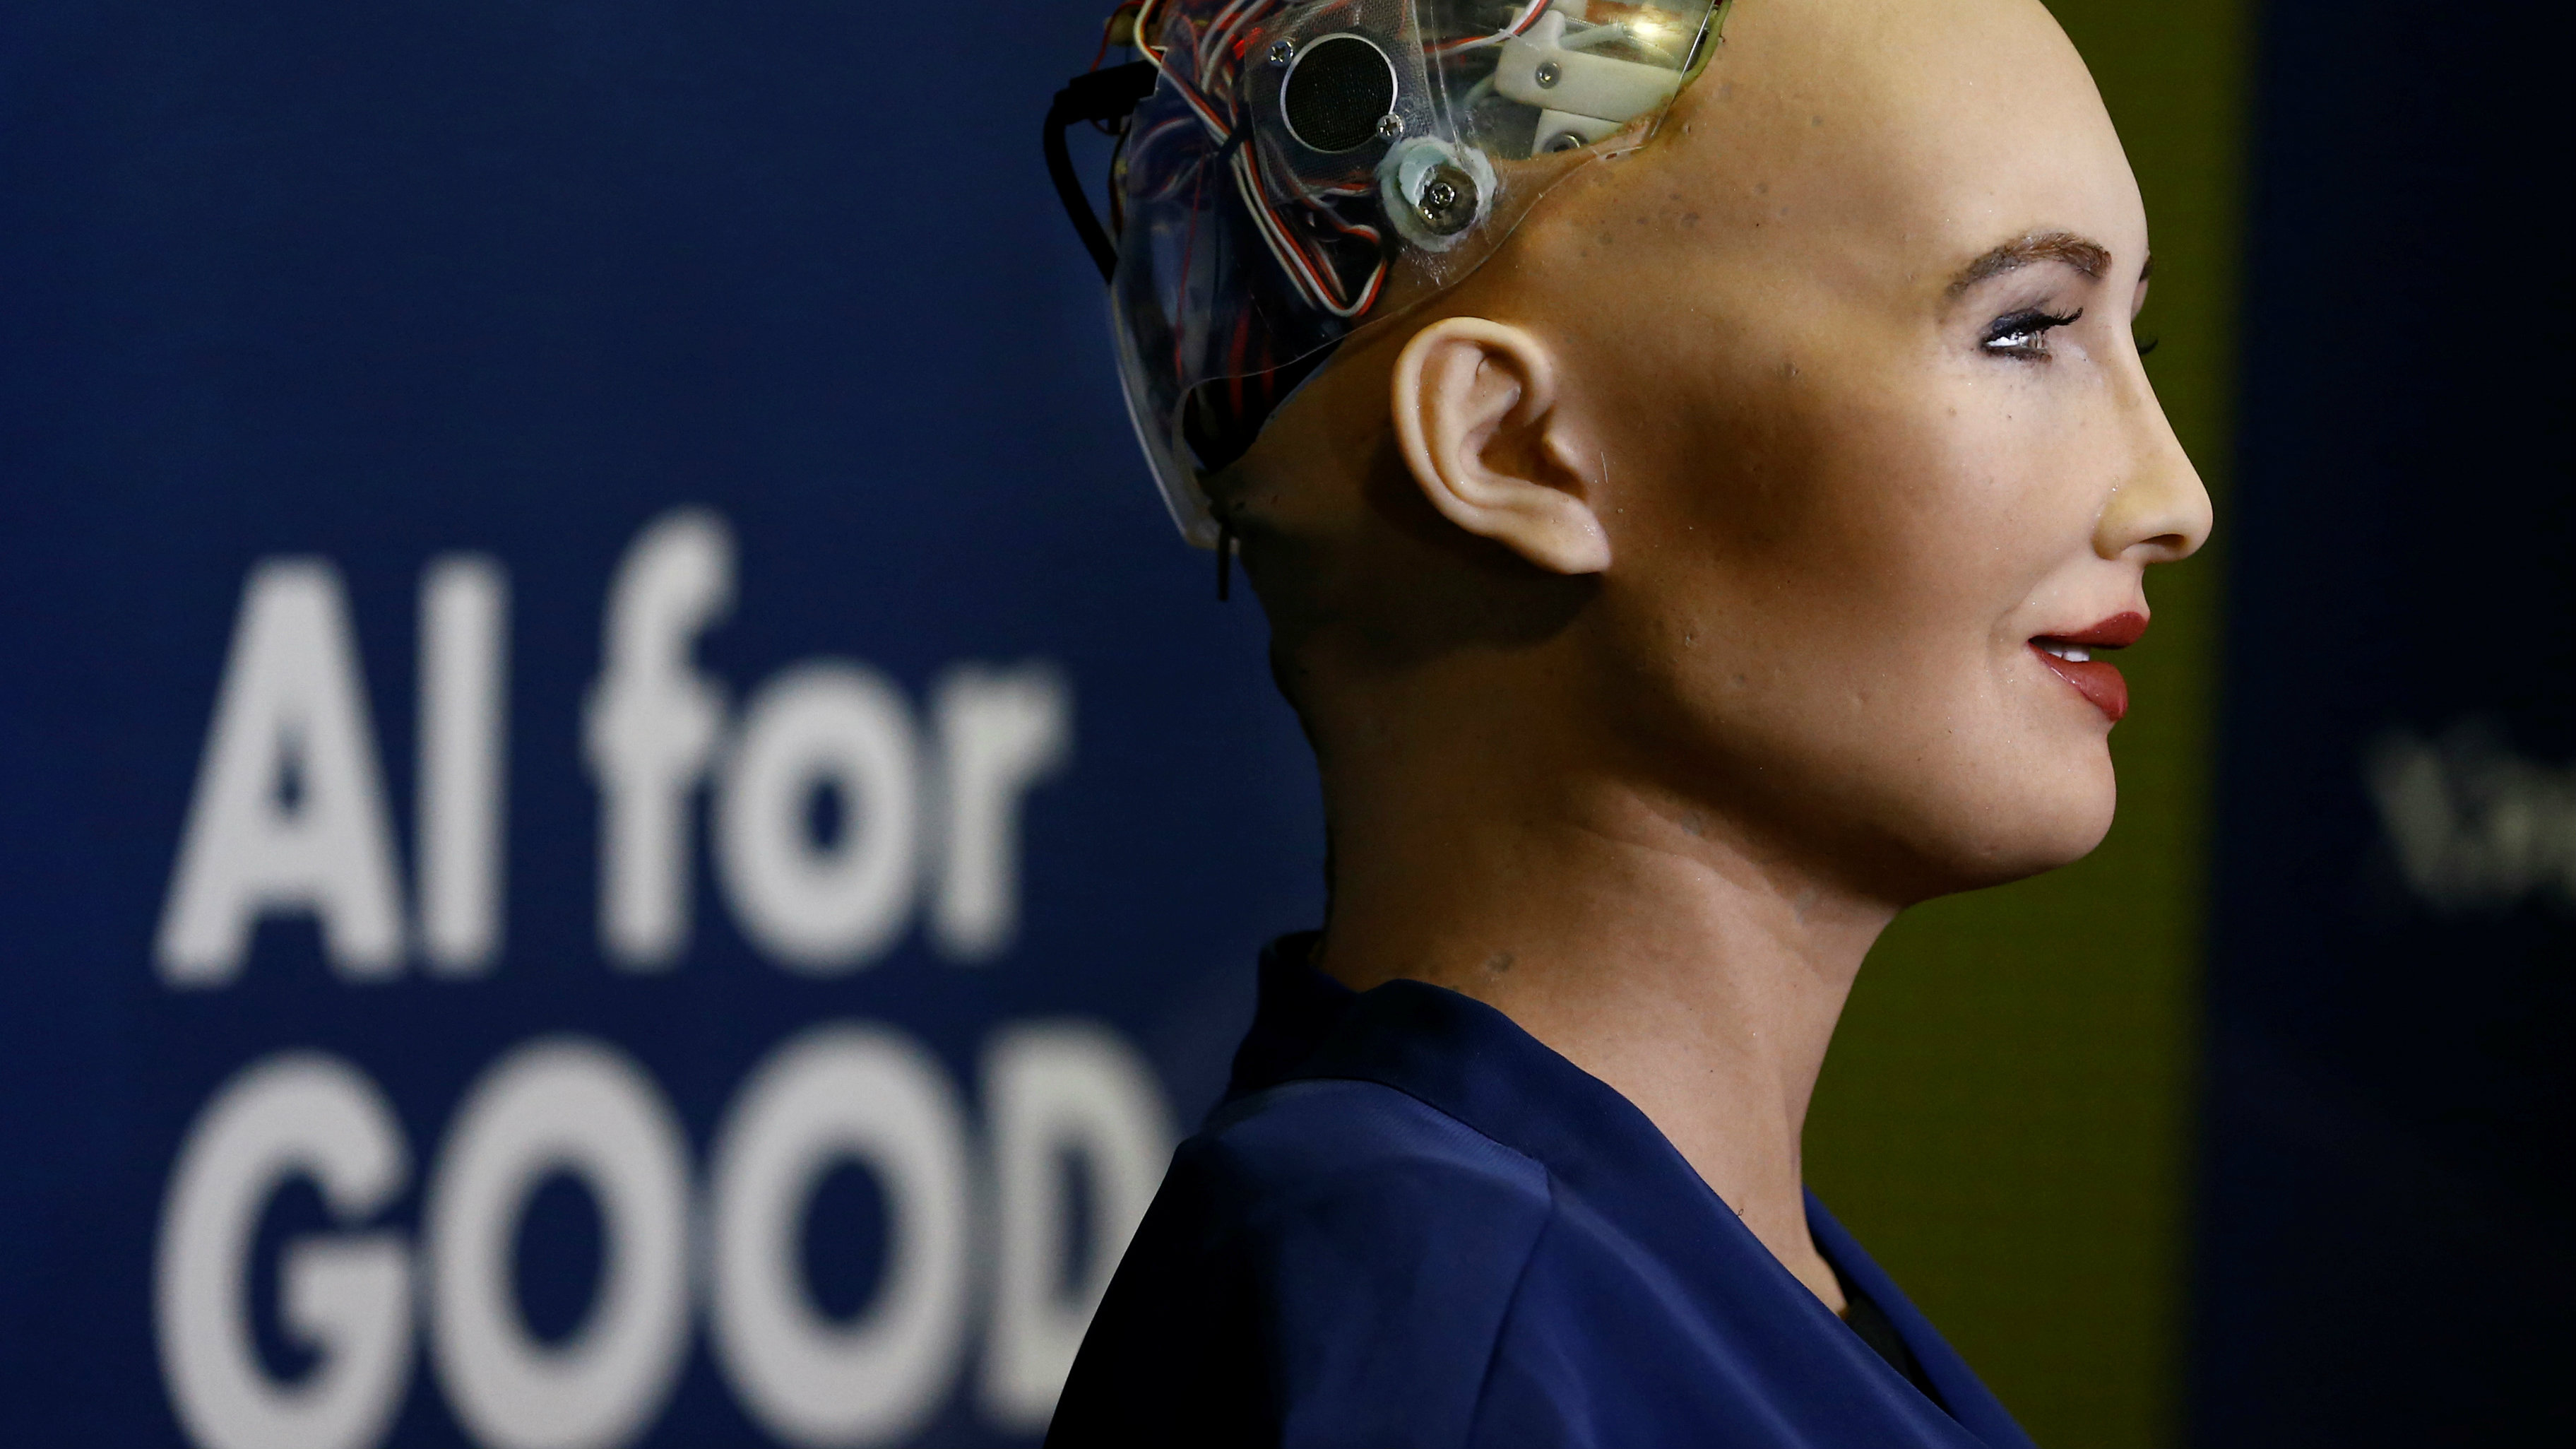 """Sophia robot at the """"AI for Good"""" Global Summit"""